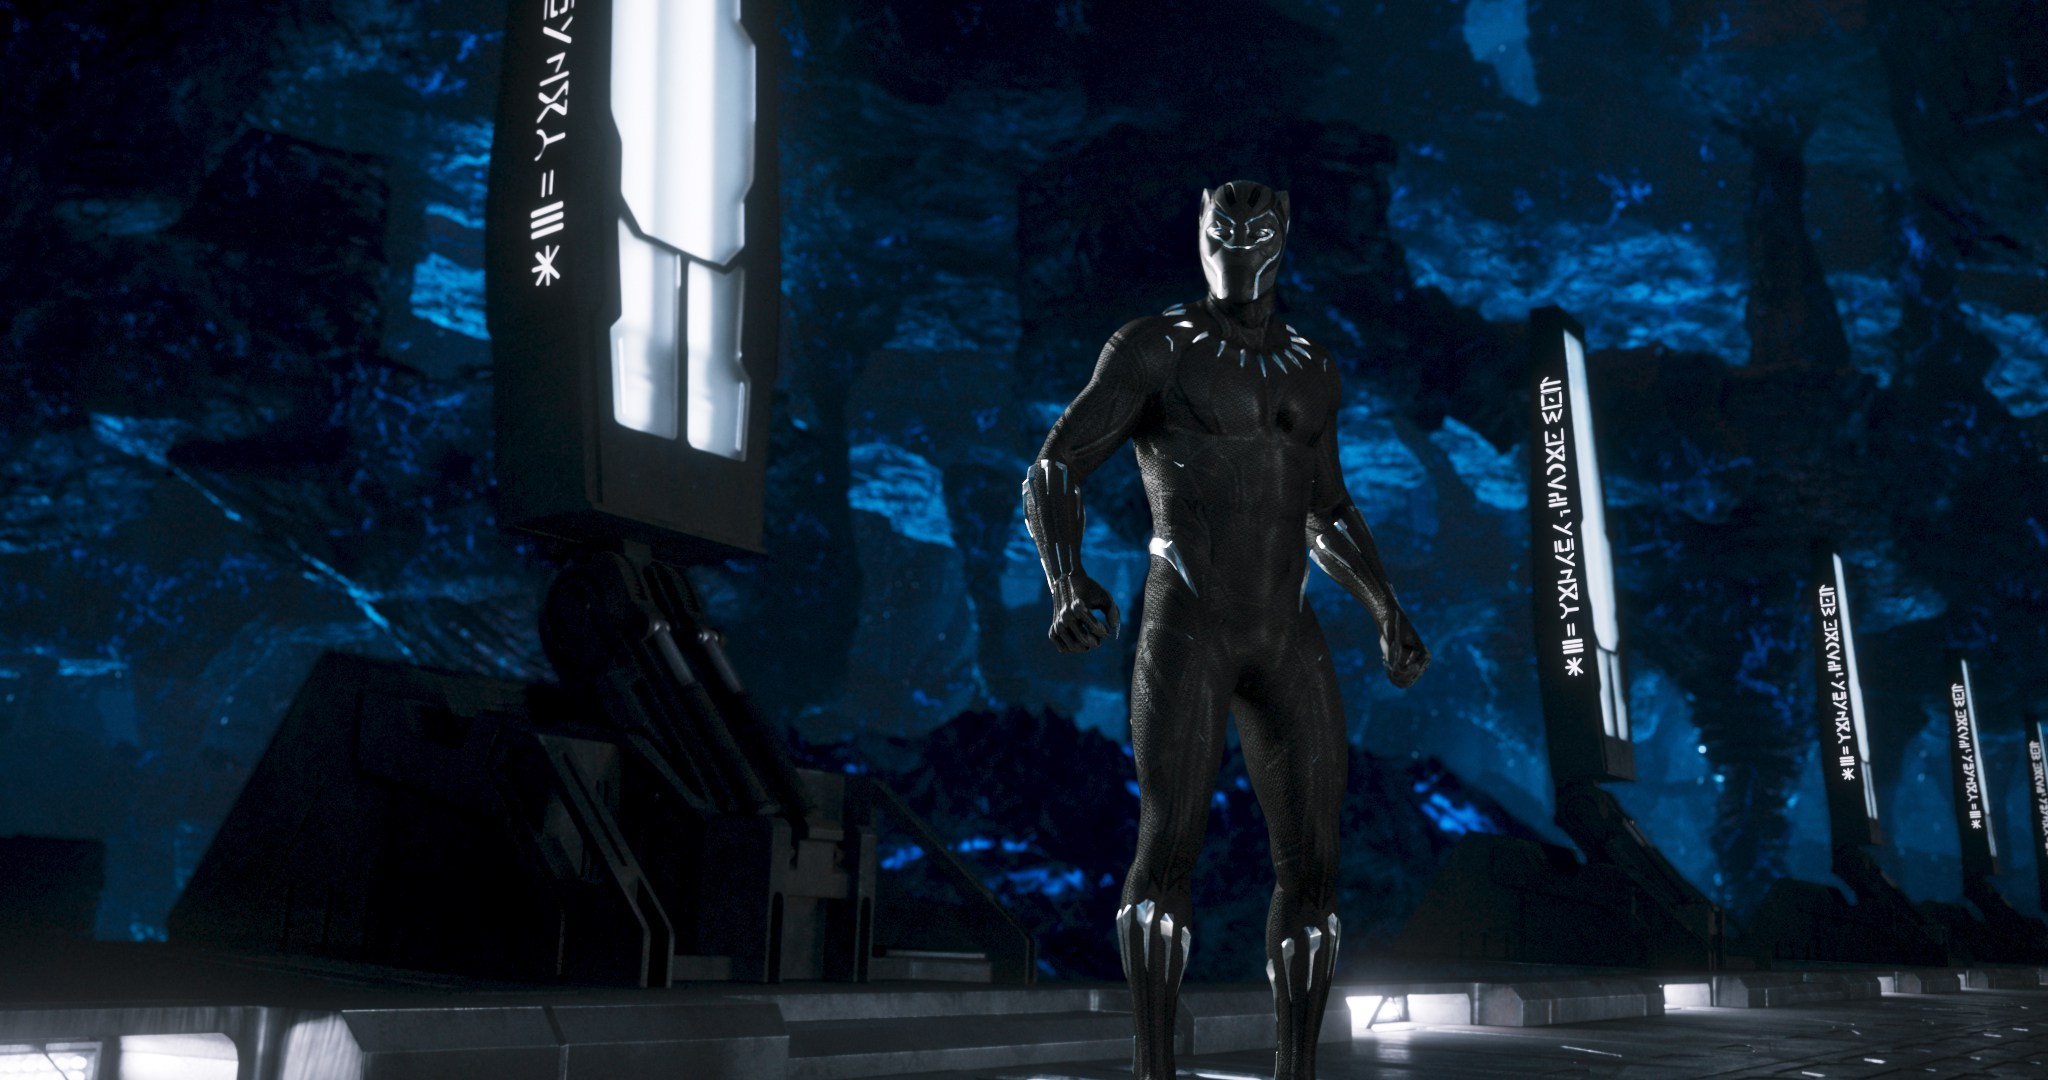 1336x768 Marvel Black Panther Movie 2018 Laptop Hd Hd 4k Wallpapers Images Backgrounds Photos And Pictures